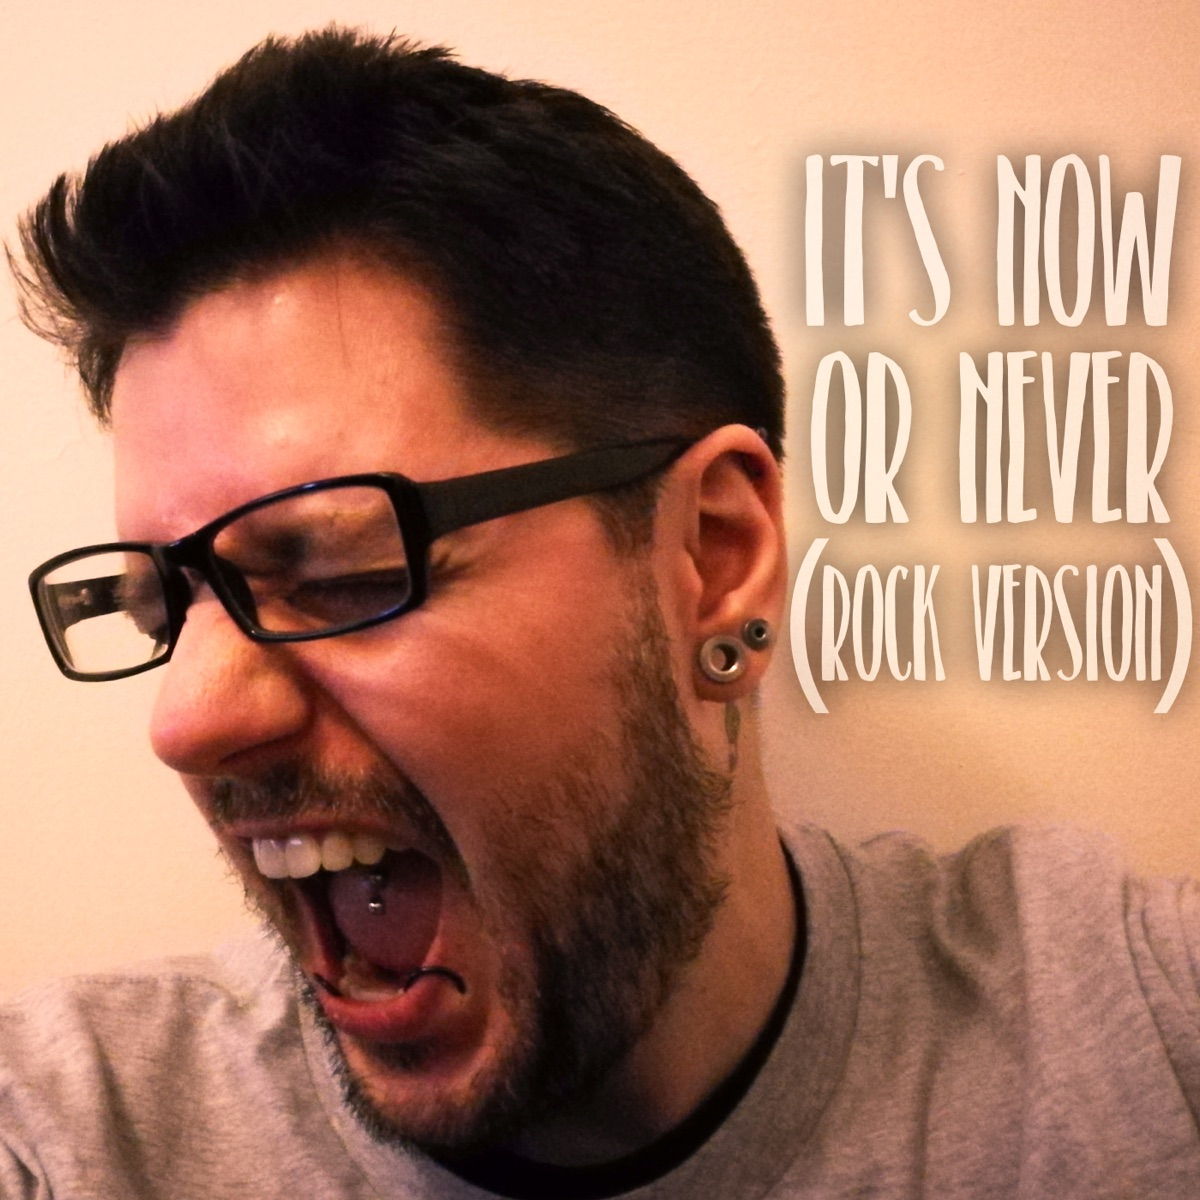 Its Now or Never Rock Version - Single Jack Muskrat CD cover